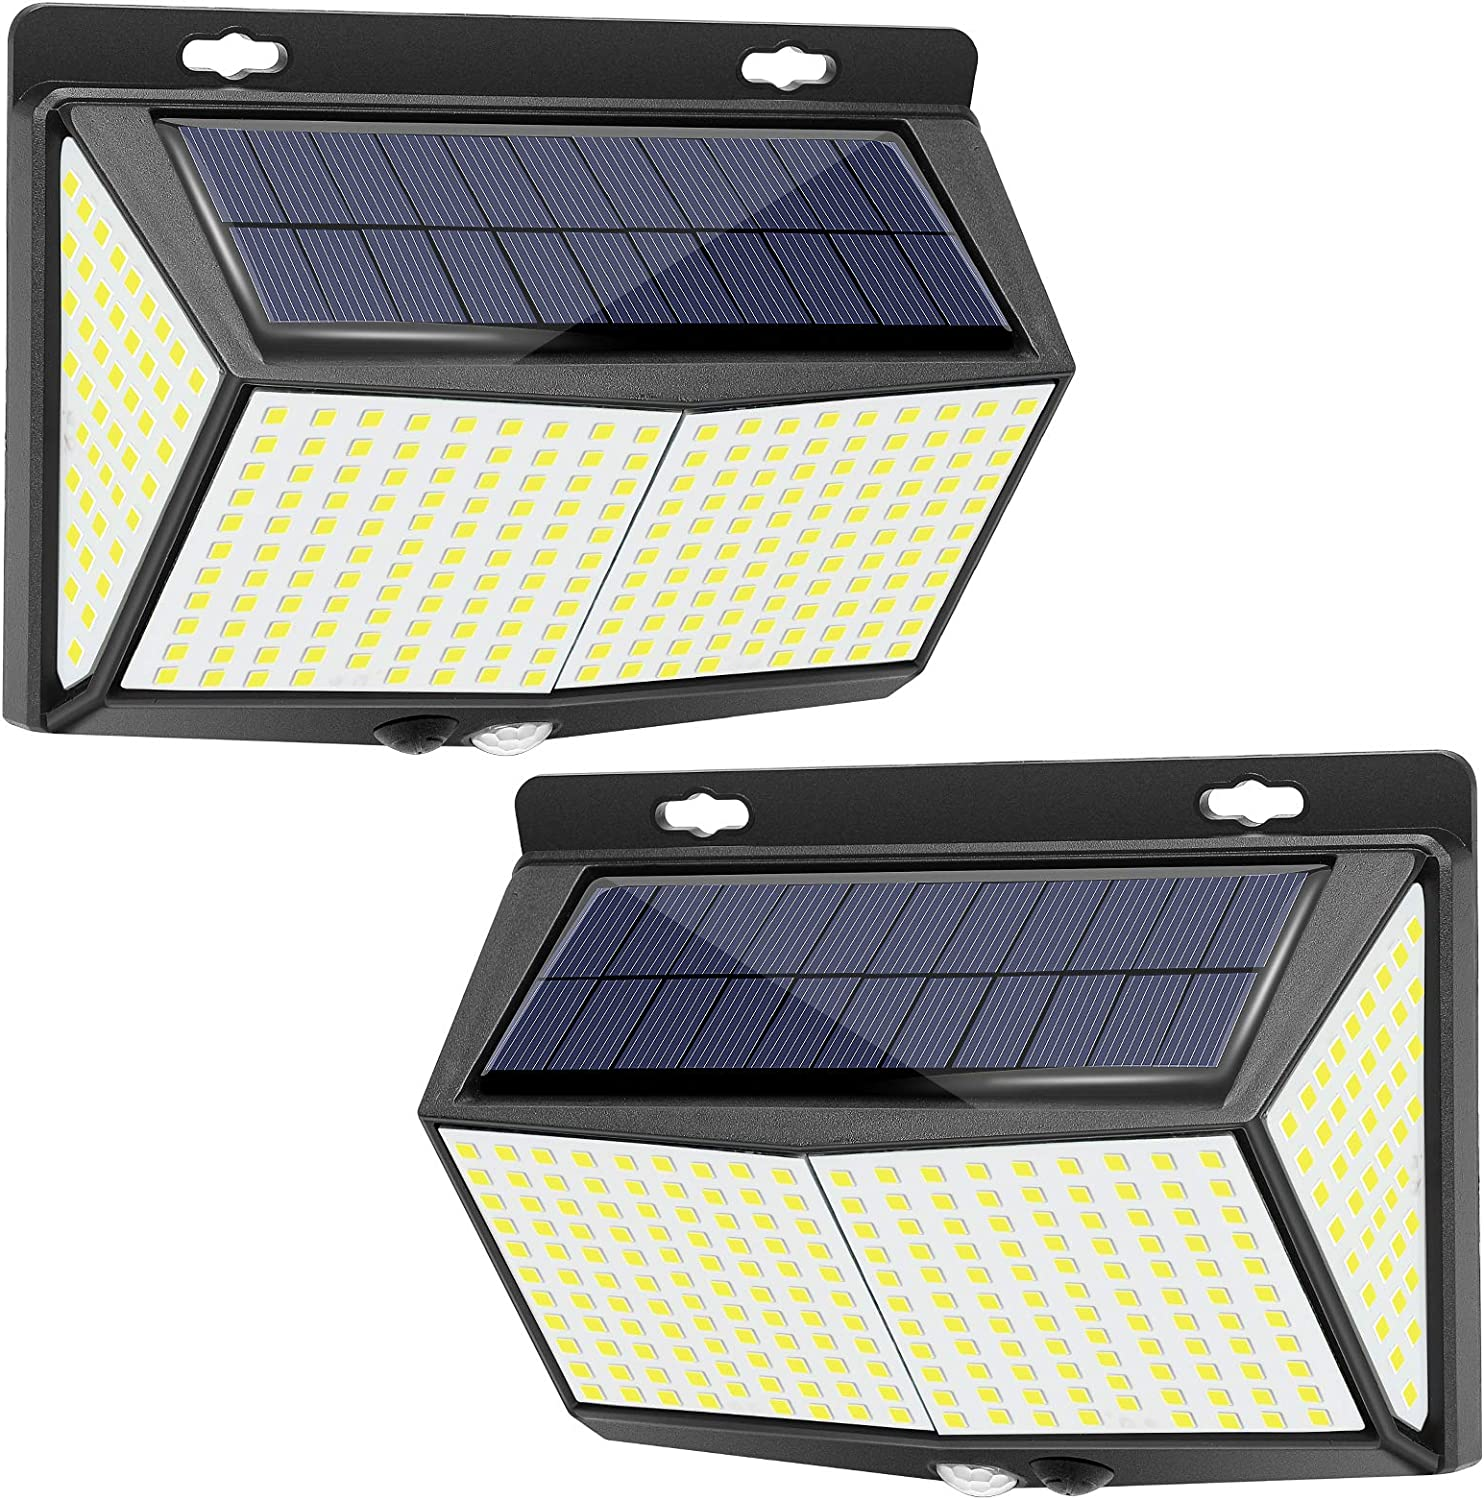 Amazon Com 288 Led Solar Lights Outdoor 2 Packs Exterior Solar Powered Lights Security Motion Sensor Lights With 3 Lighting Modes 270 Wide Angle Ip65 Waterproof Wireless For Outside Wall Fence Yard Garage Home Improvement